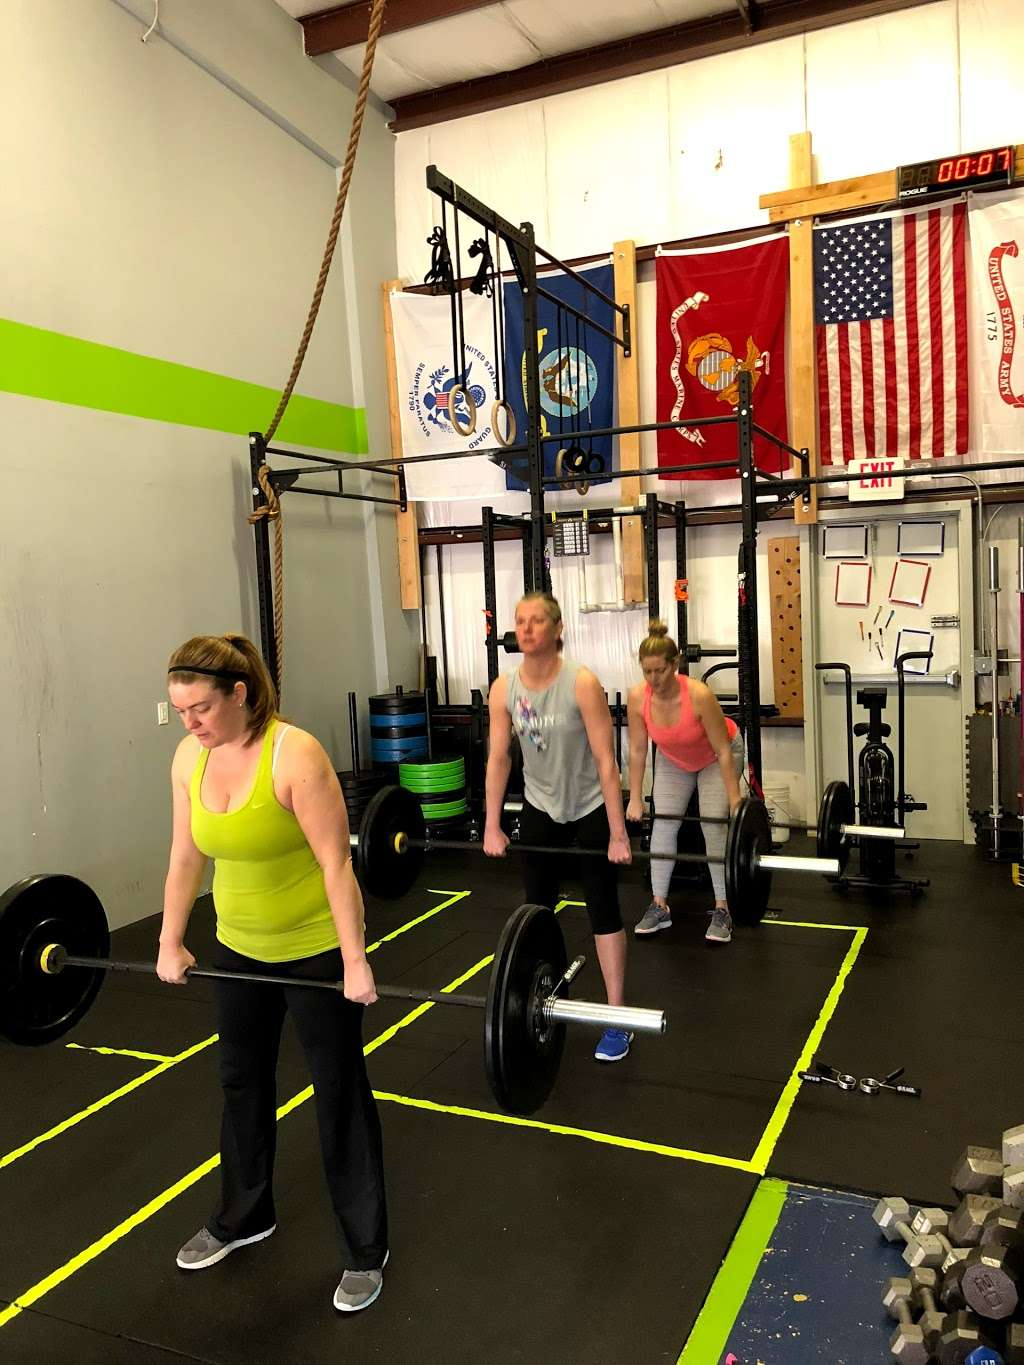 Clamtown CrossFit - gym  | Photo 8 of 10 | Address: 140 7th Ave # 2, Little Egg Harbor Township, NJ 08087, USA | Phone: (609) 812-2145